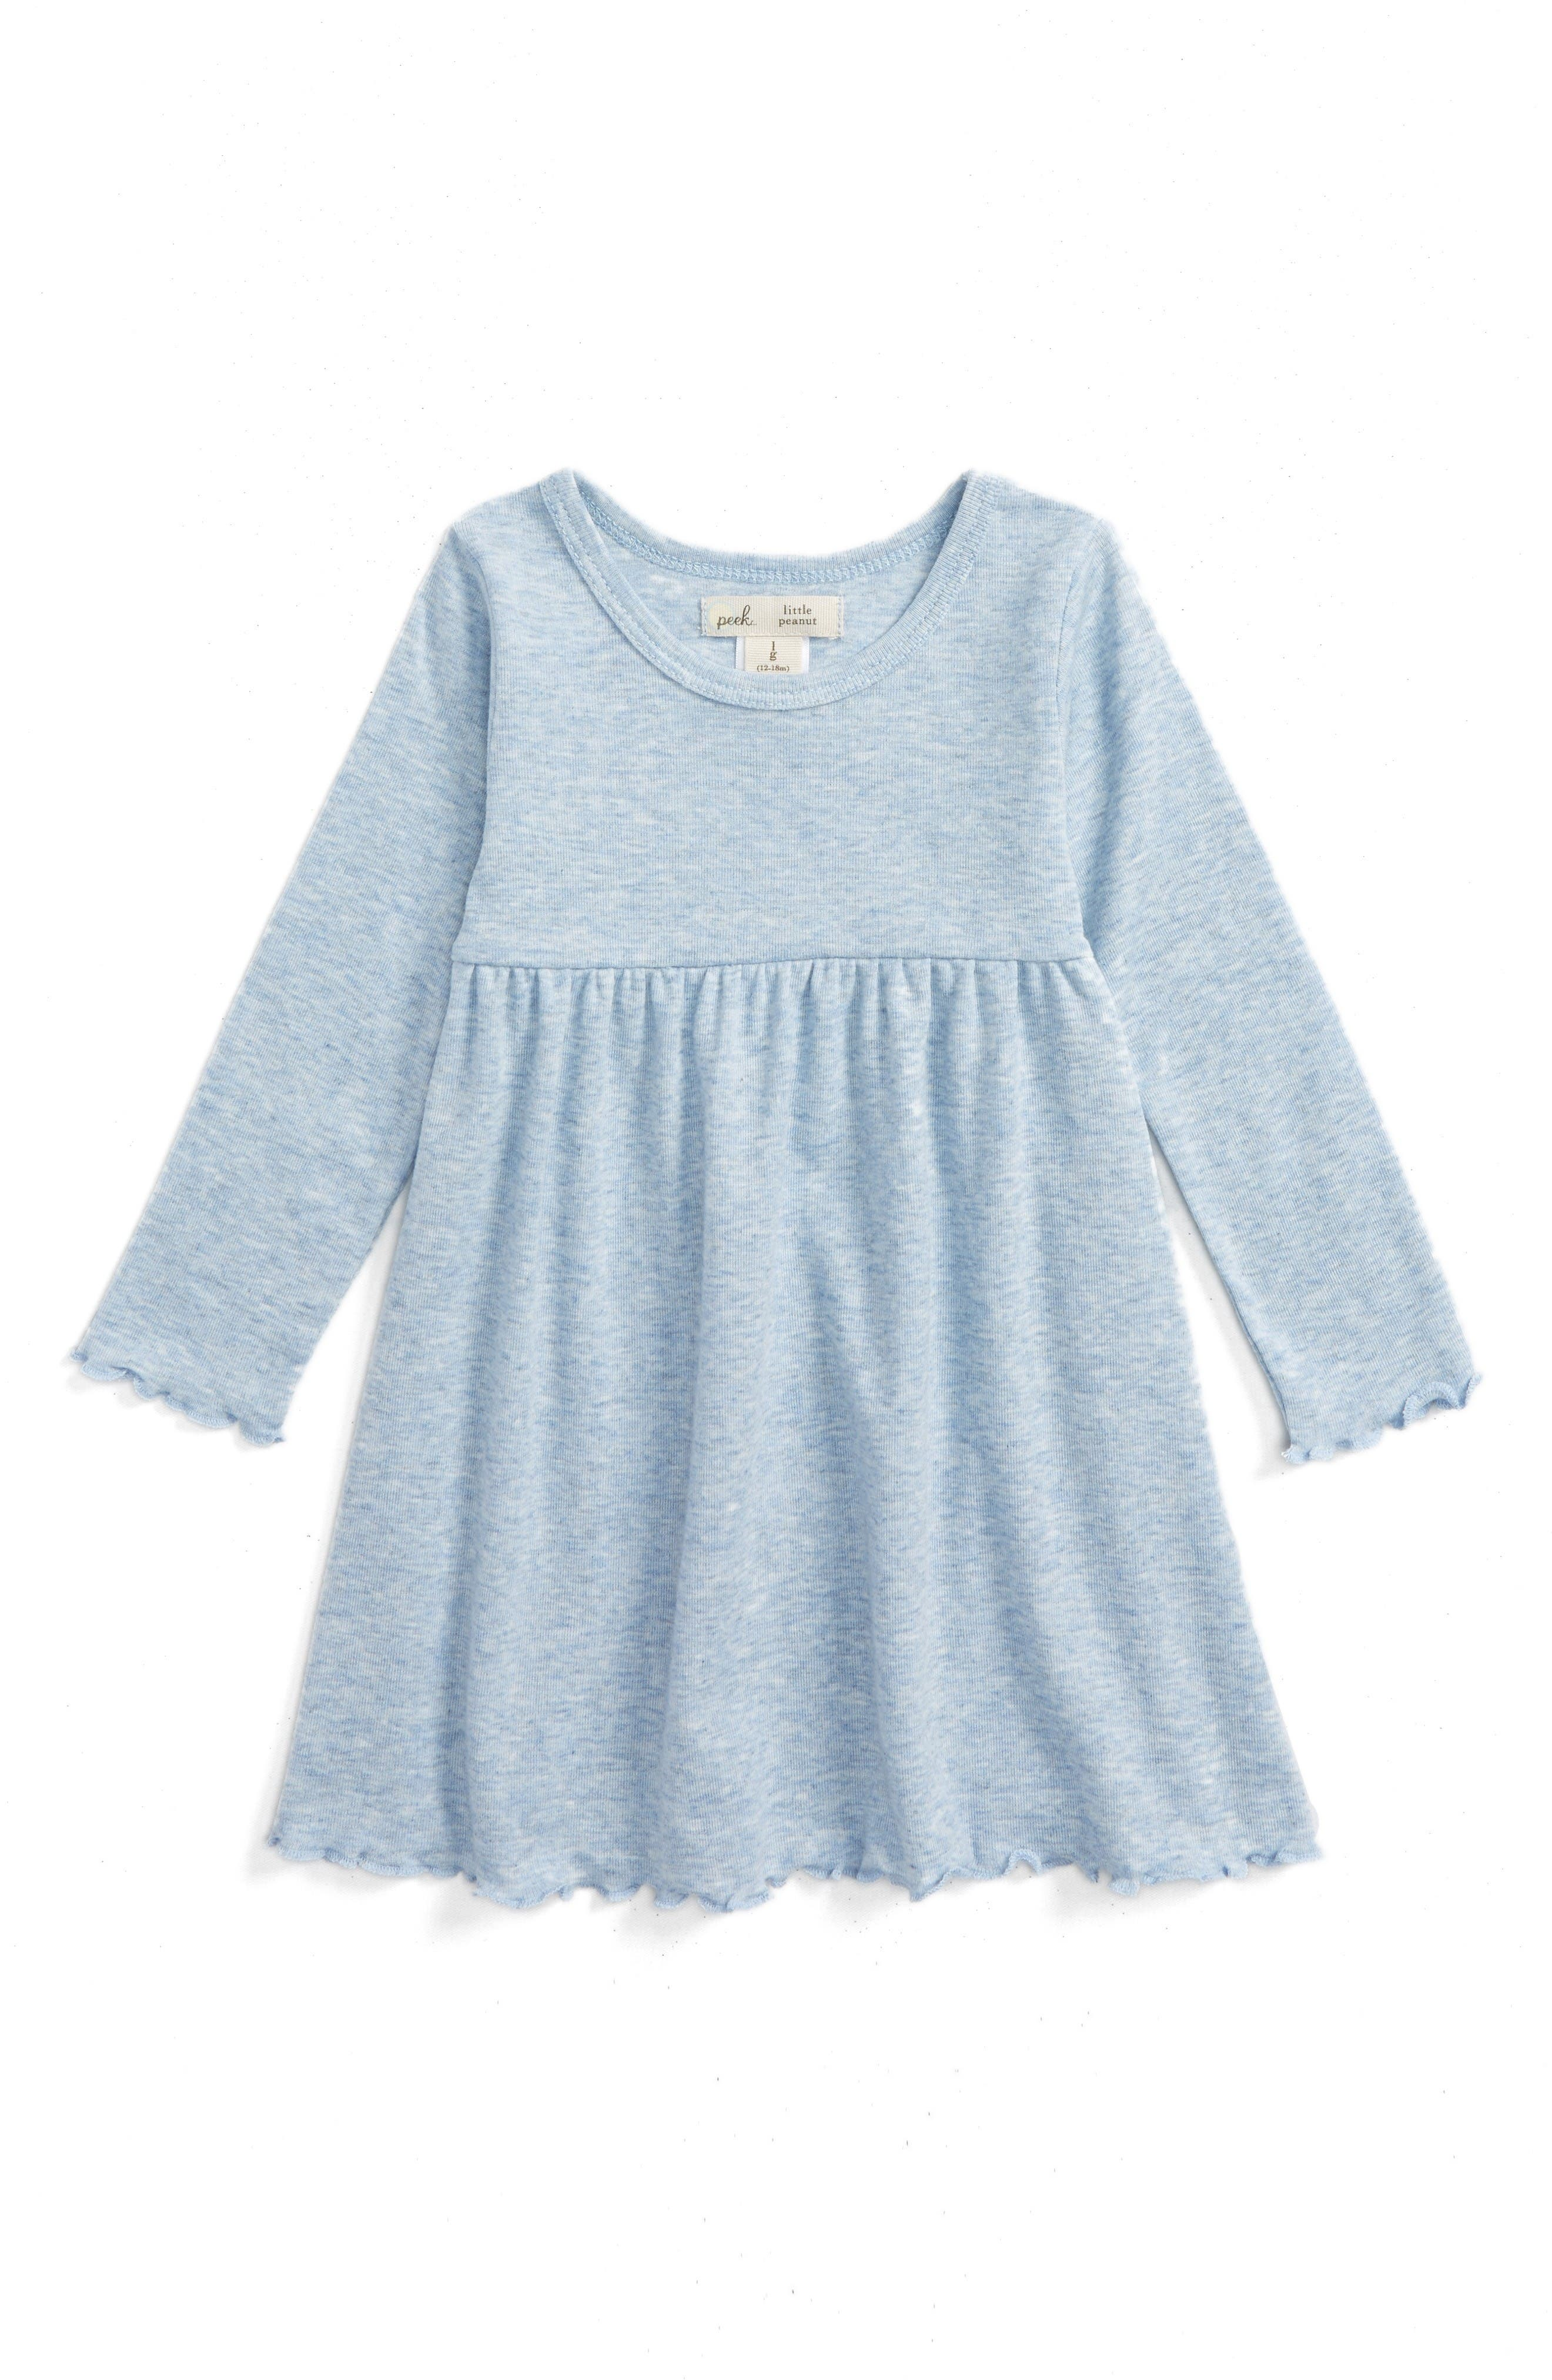 PEEK ESSENTIALS Peek Little Peanut Dress